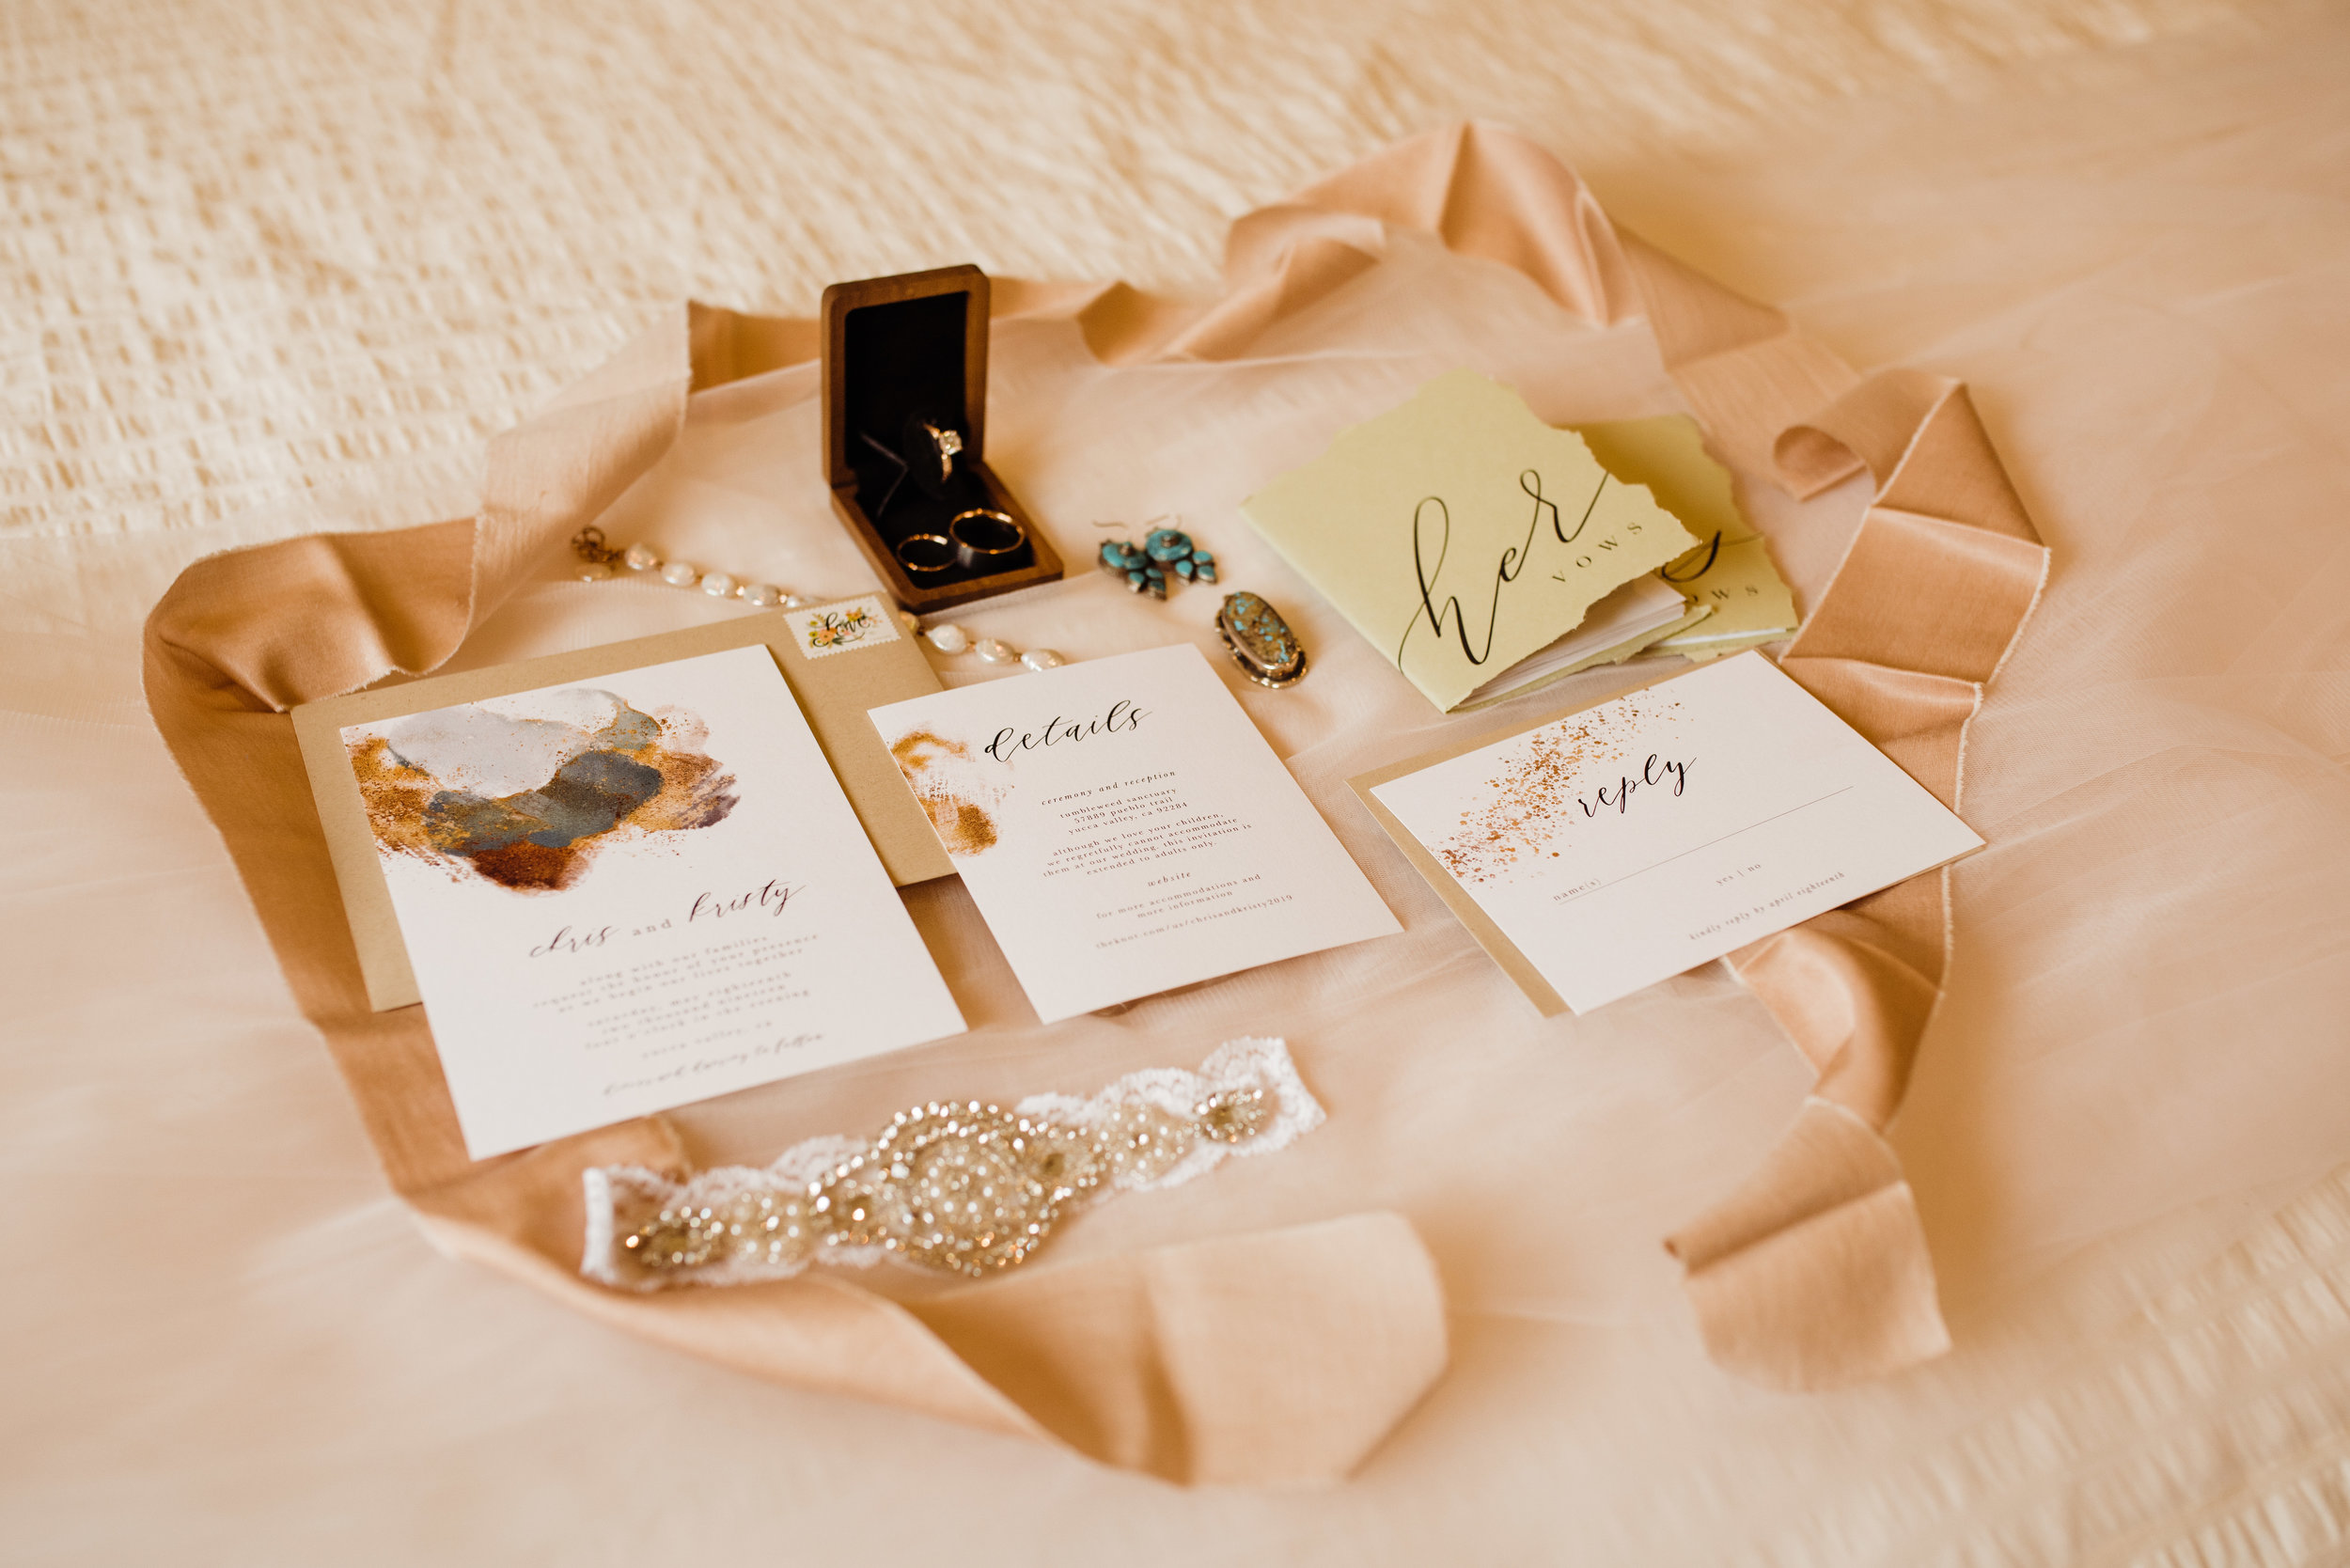 Wedding day details at Joshua Tree Intimate Wedding while bride gets ready at Serenity Escape JT Airbnb